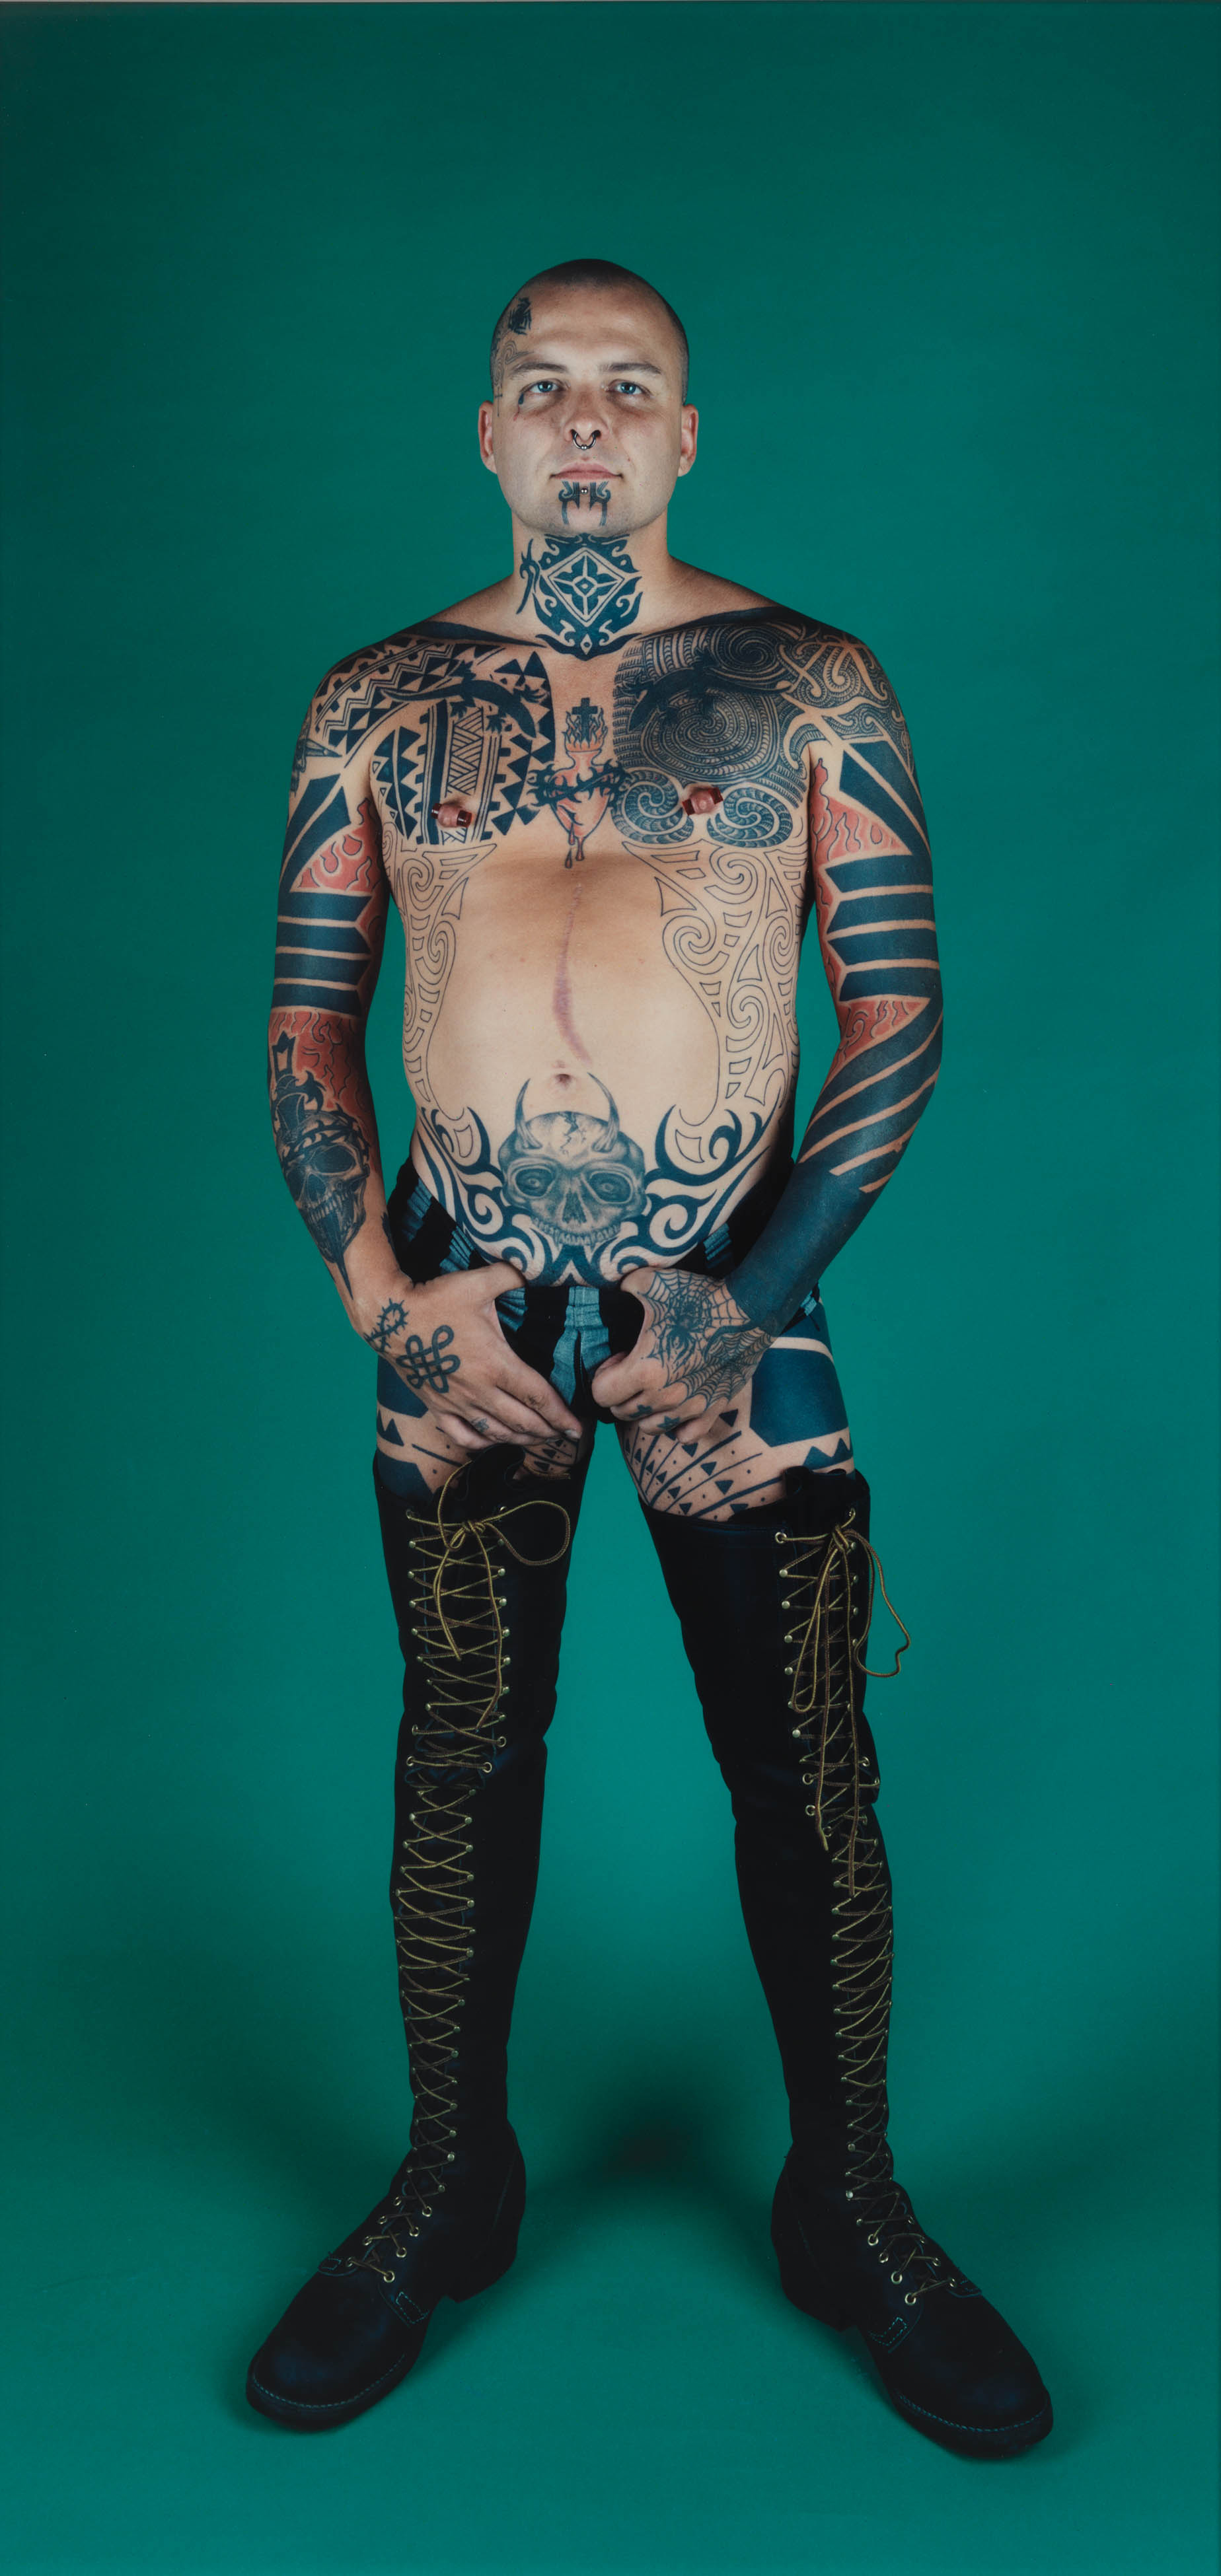 Image above:Ron Athey, 1994. Chromogenic print. Whitney Museum of American Art, New York; Gift of Norman Dubrow. © Catherine Opie. Courtesy Regen Projects, Los Angeles